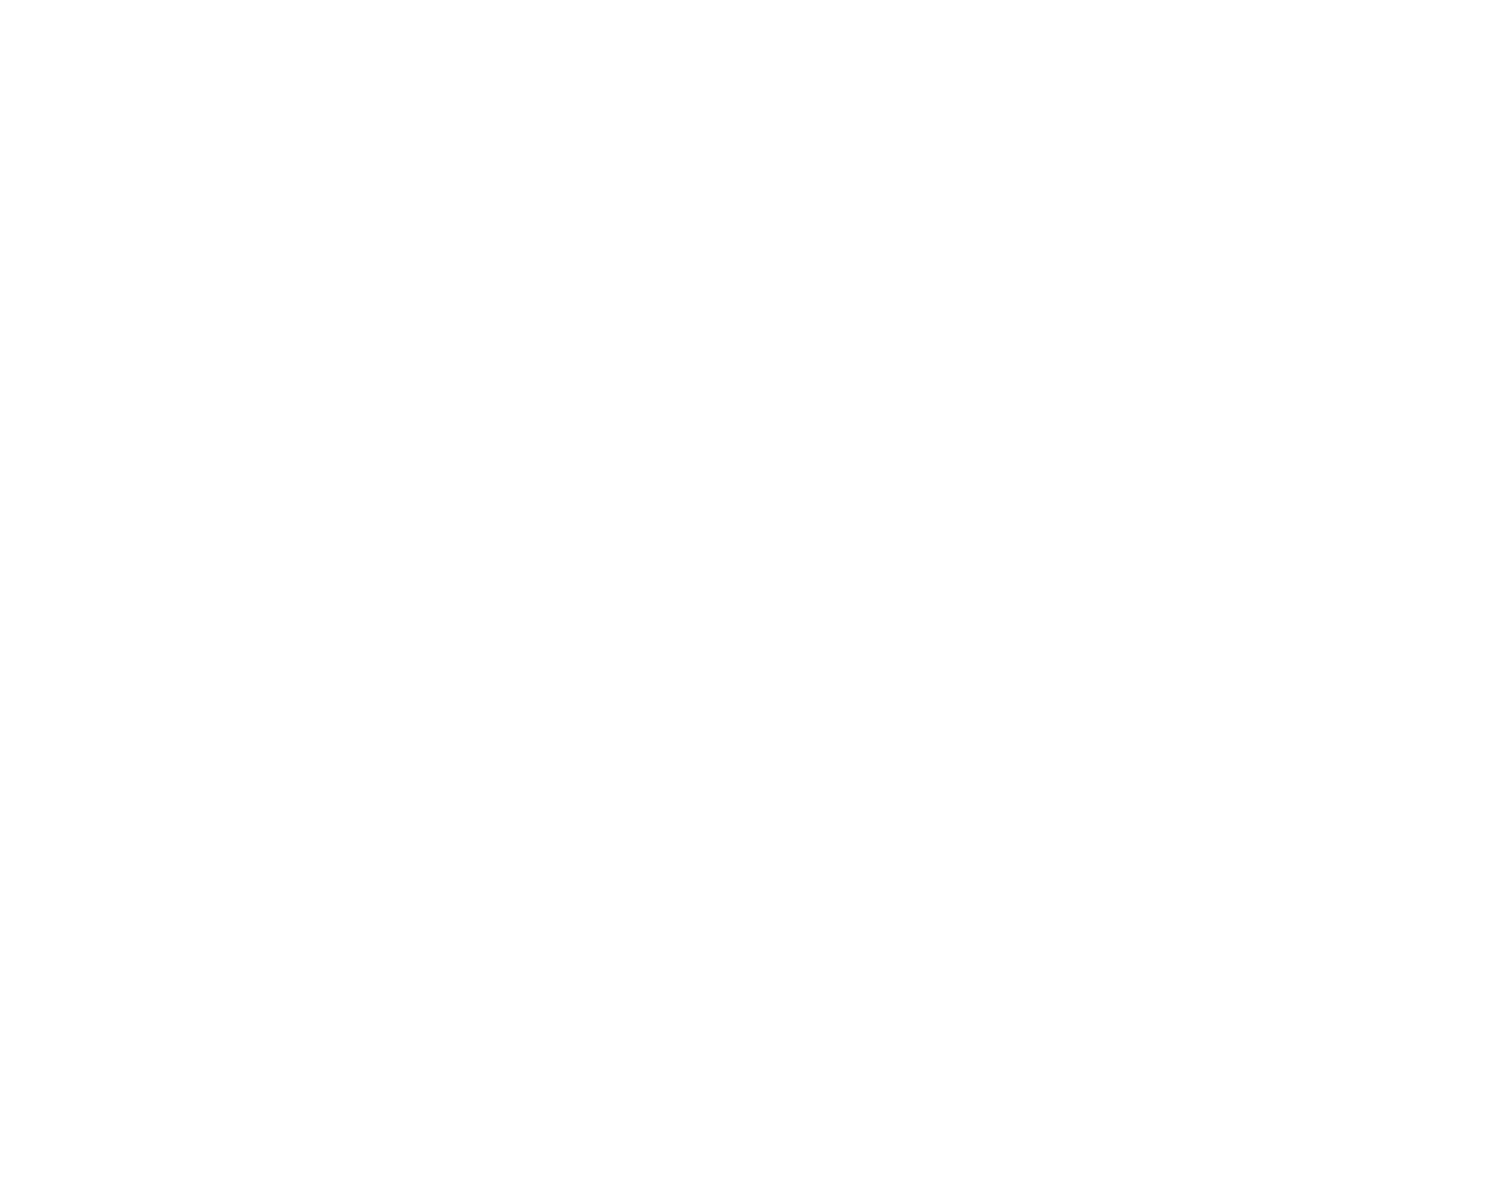 Jack's Kitchen & Bath